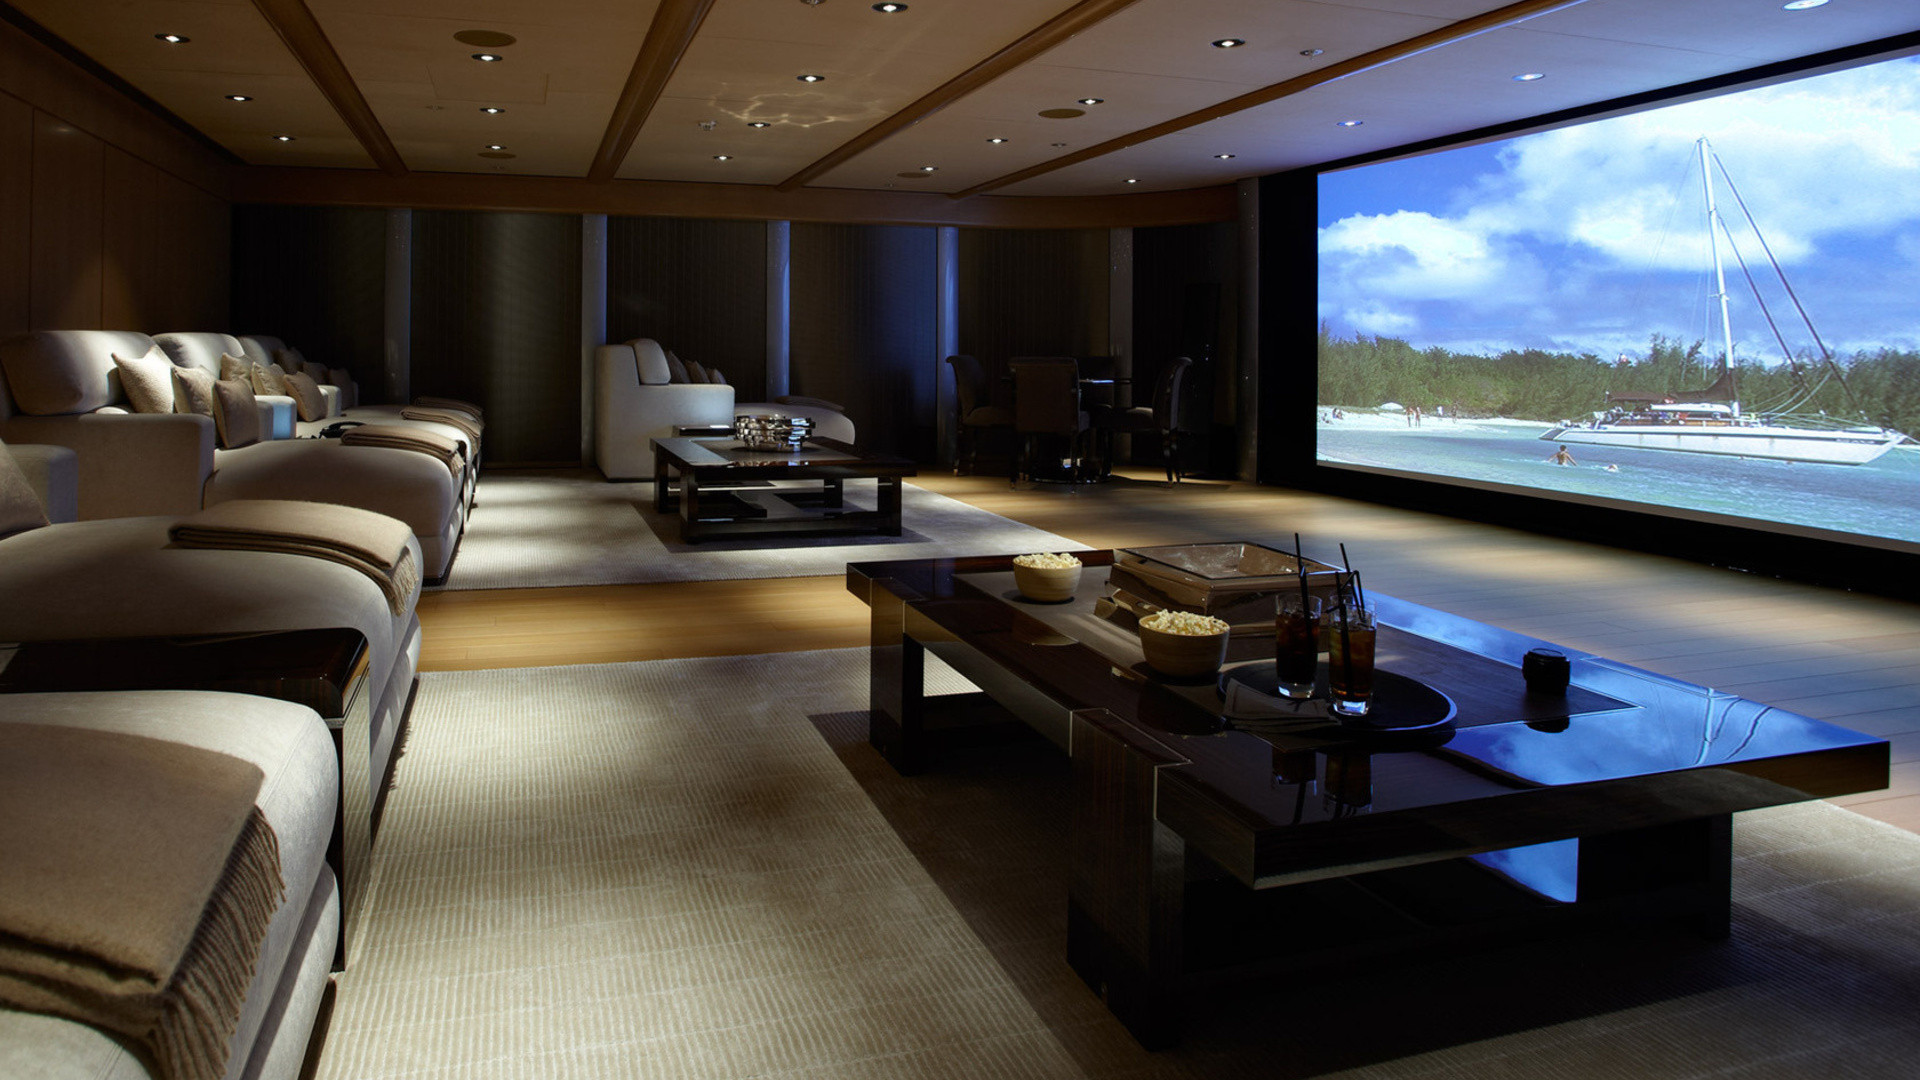 Wide-space-for-designing-home-theater-with-small-lamps-and-tile-ceiling-model-and-wooden-floor-and-amusing-table-and-comfort-couchs